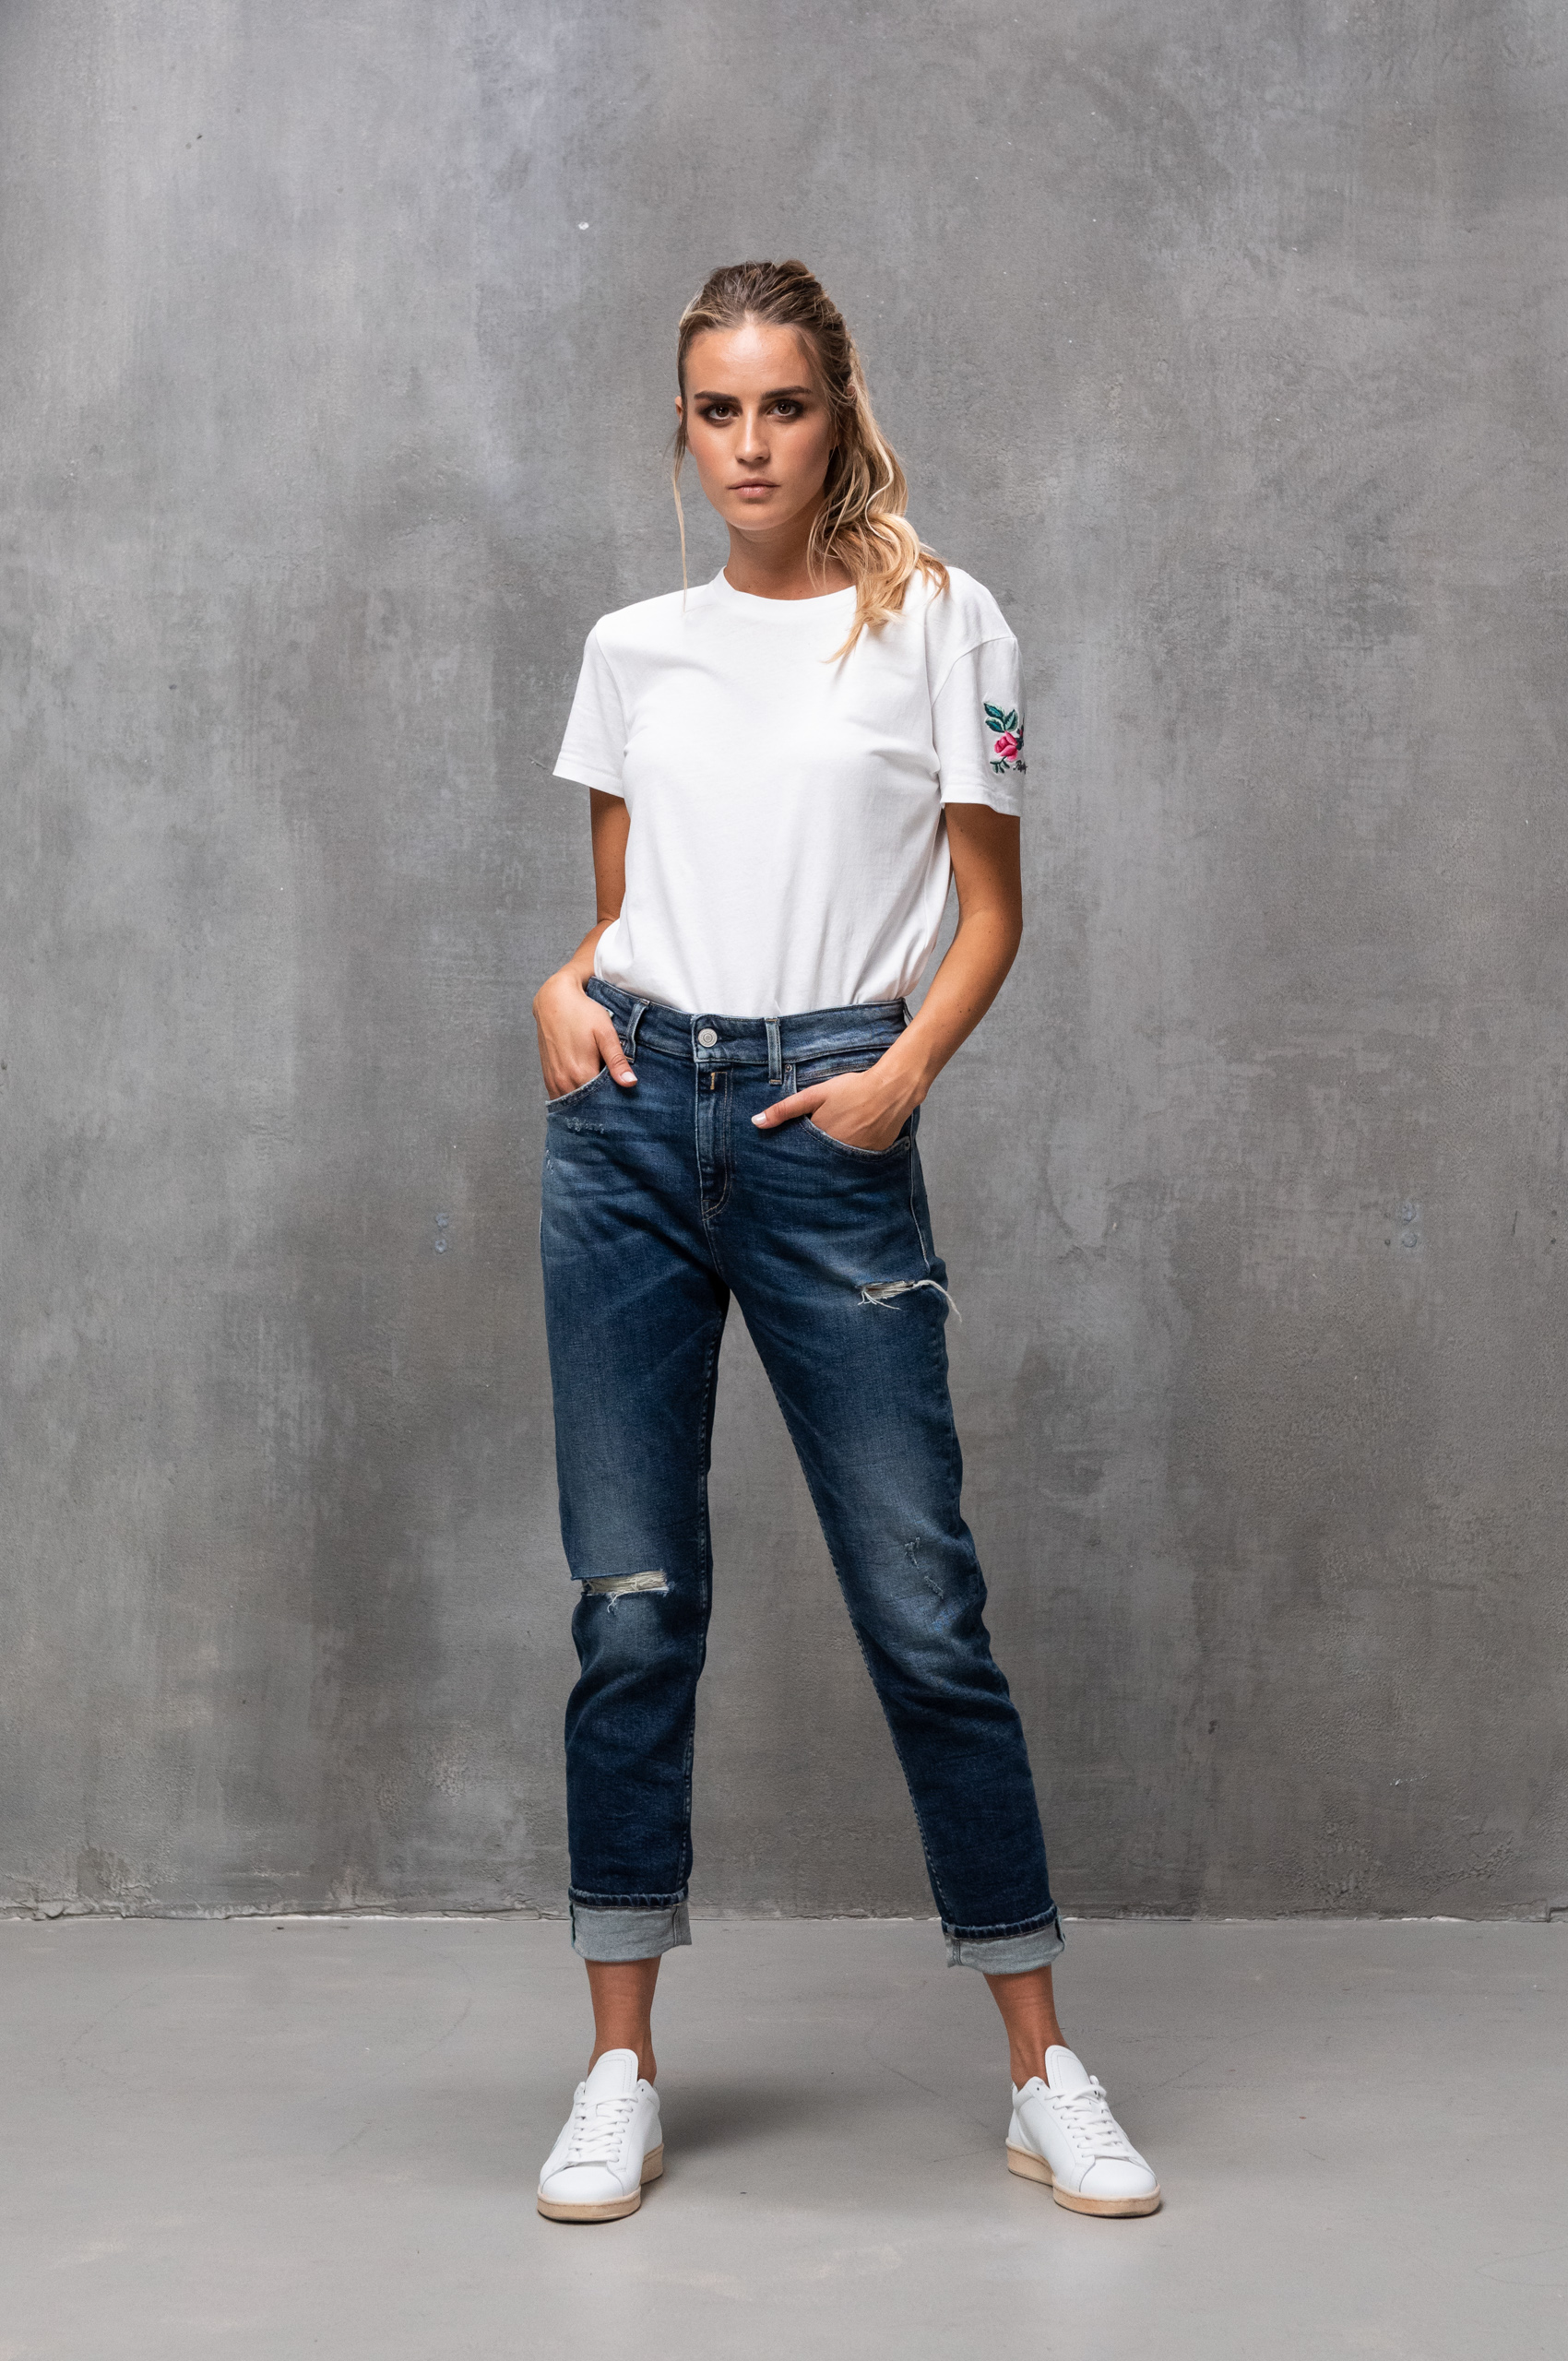 boyfit jeans fit guide women